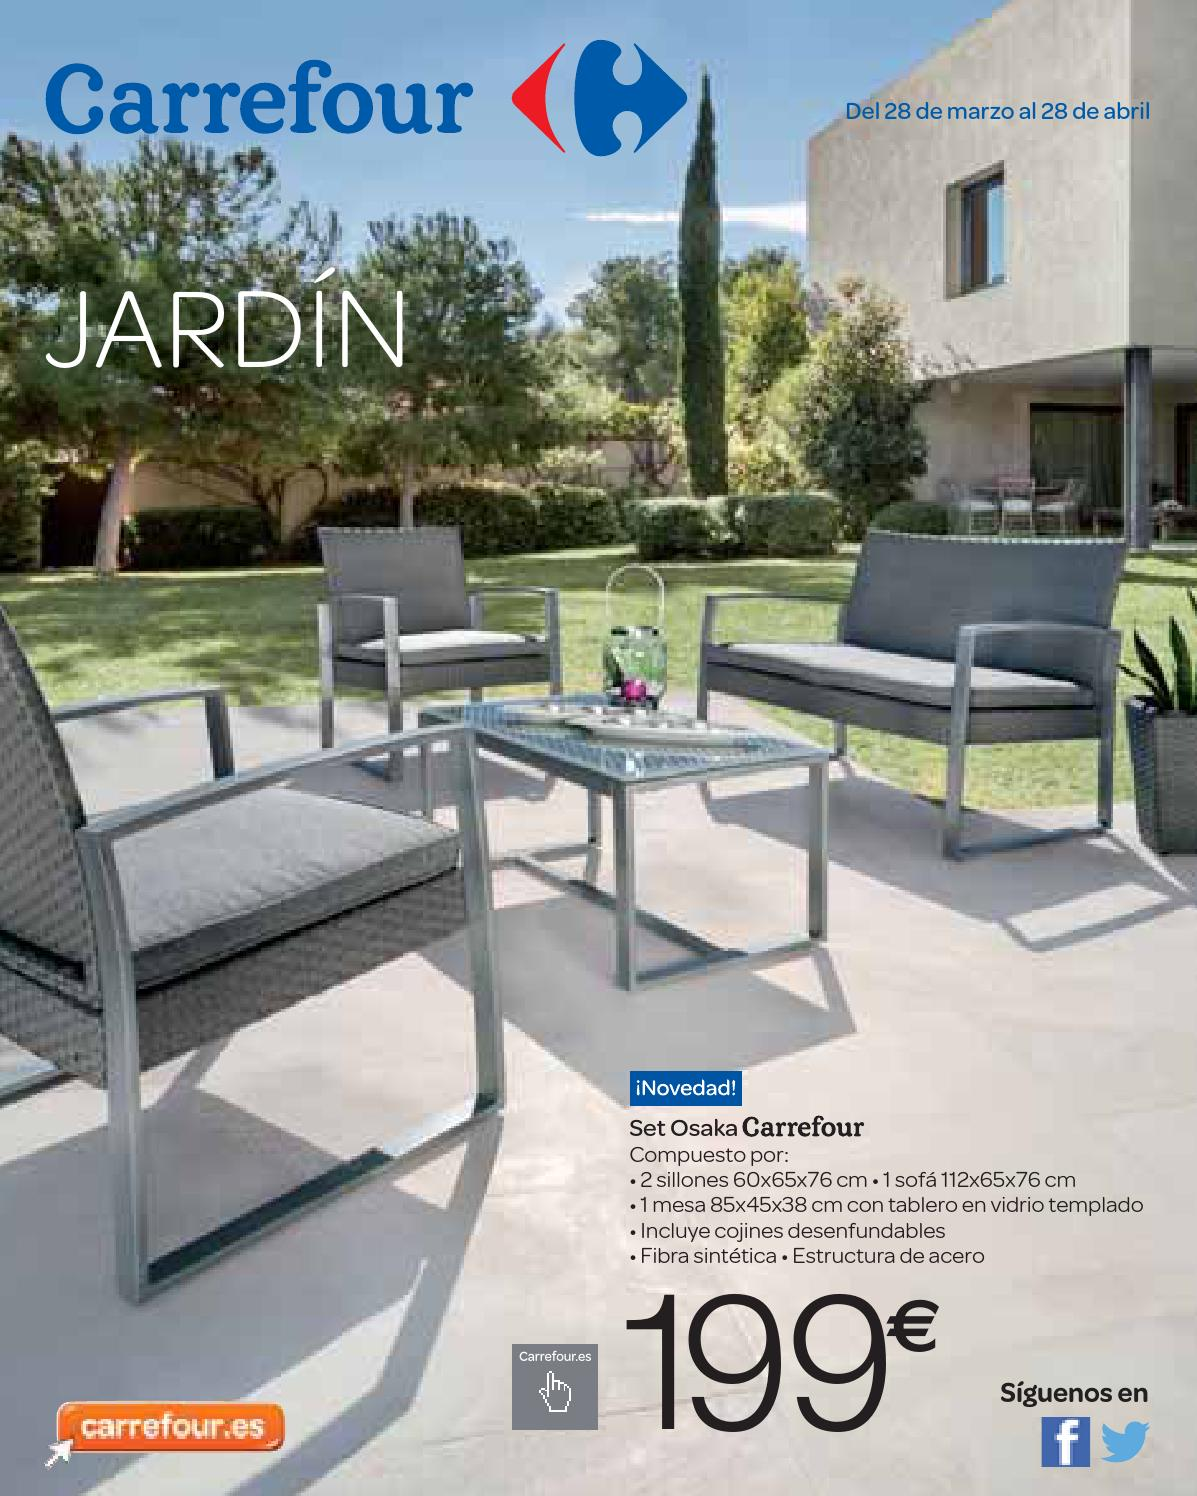 Carrefour jard n by andr gon alves issuu for Carrefour jardin